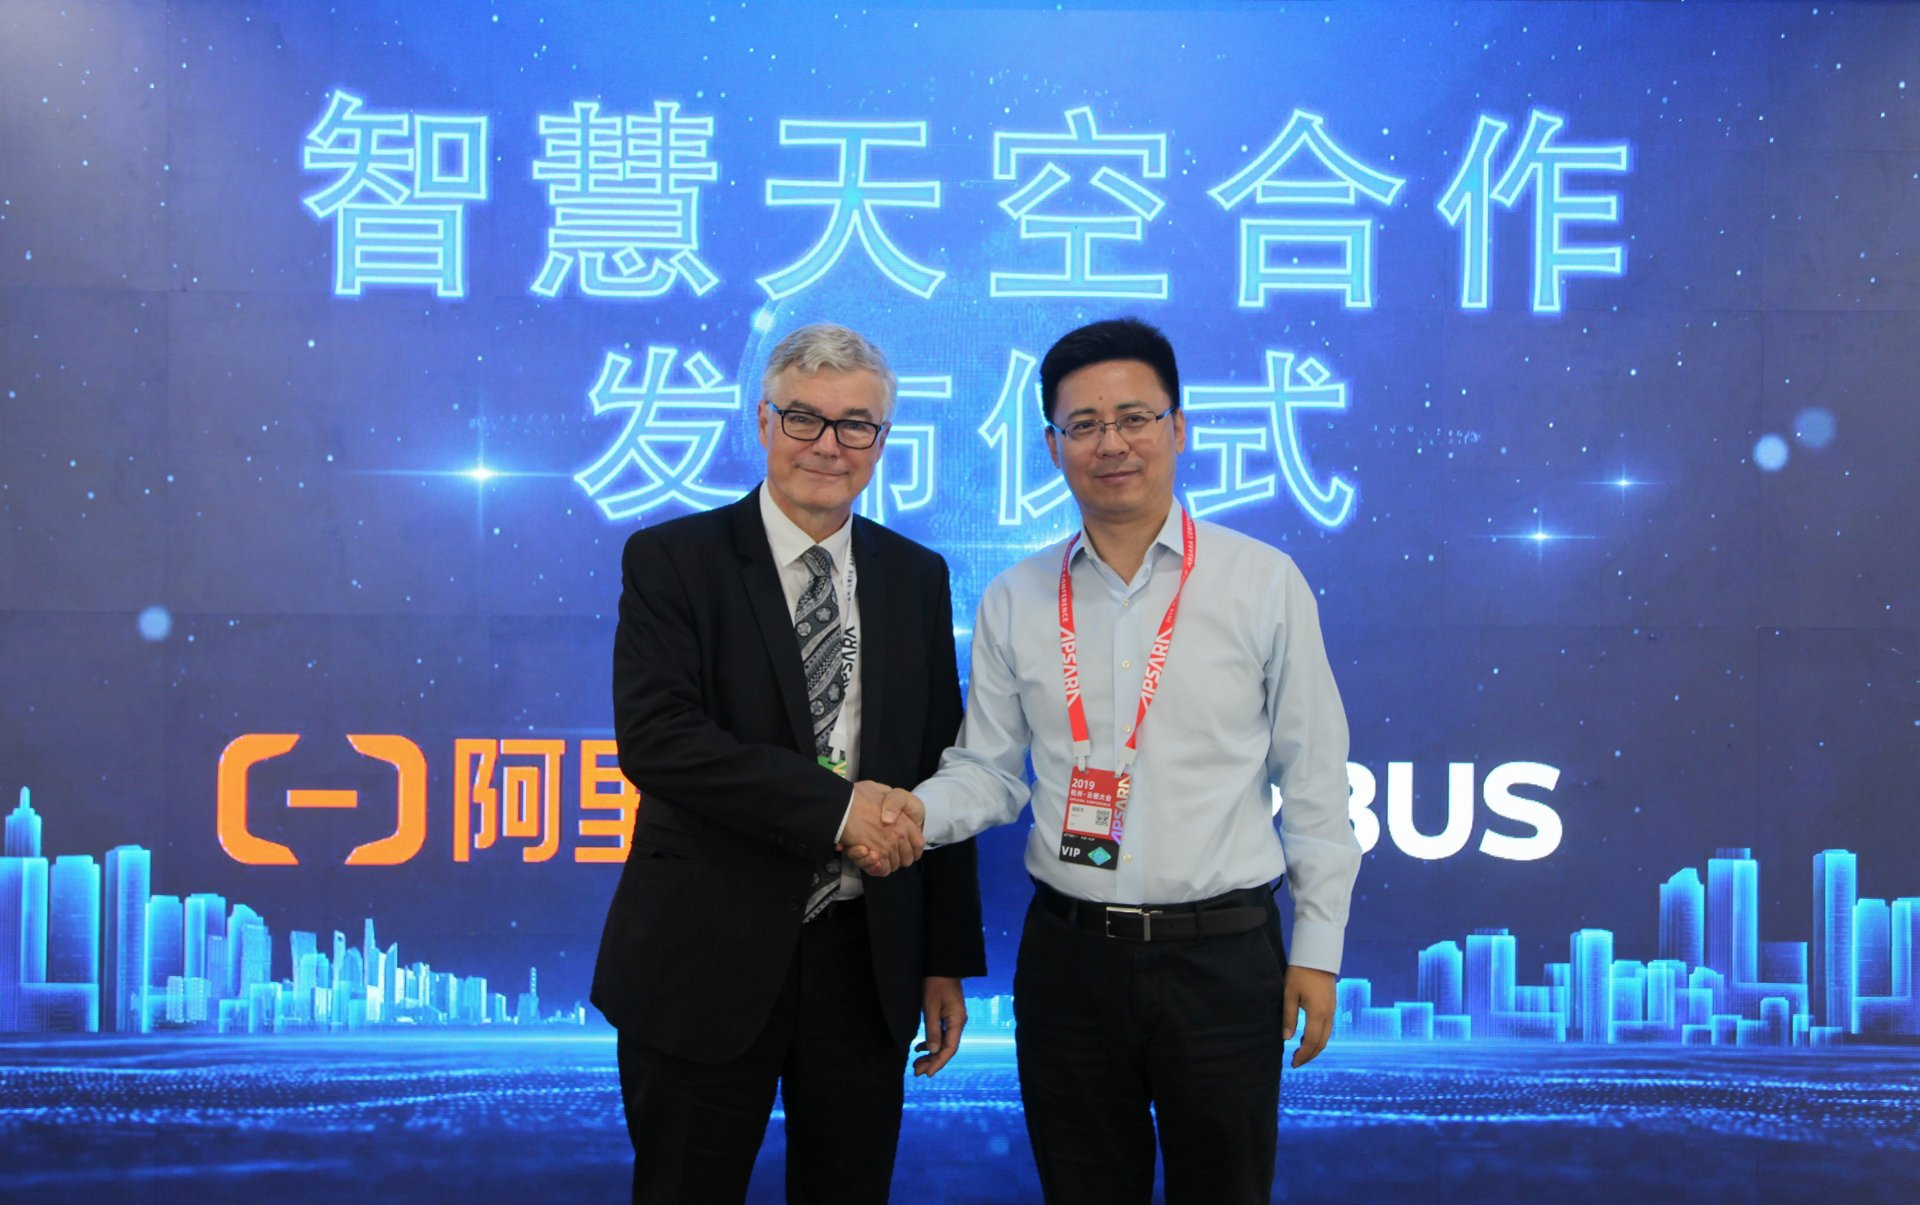 Airbus and Alibaba Cloud's cooperation to develop a Skywise Data Centre in China was announced by (left to right): Francois Mery, COO of Airbus China Commercial Aircraft (left) and Jerry Hu, Vice President of Alibaba Group, Head of CIO College